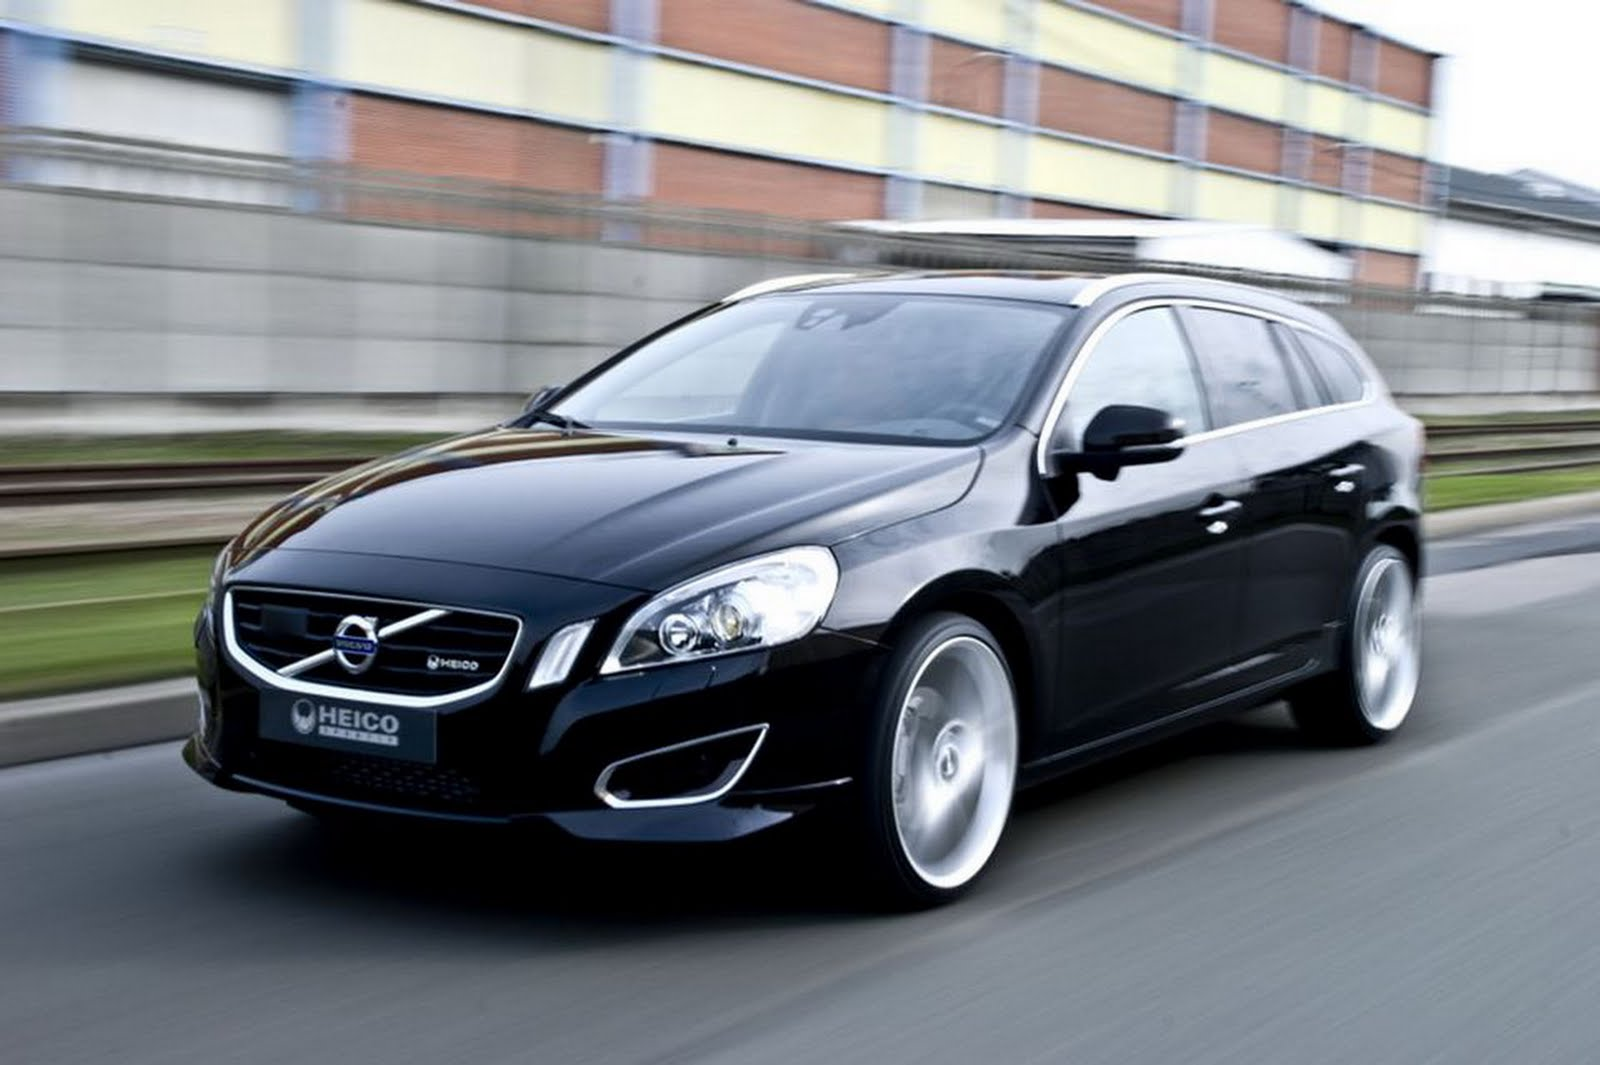 amazing automobile volvo v60 2011 stills wallpapers pictures and photos. Black Bedroom Furniture Sets. Home Design Ideas